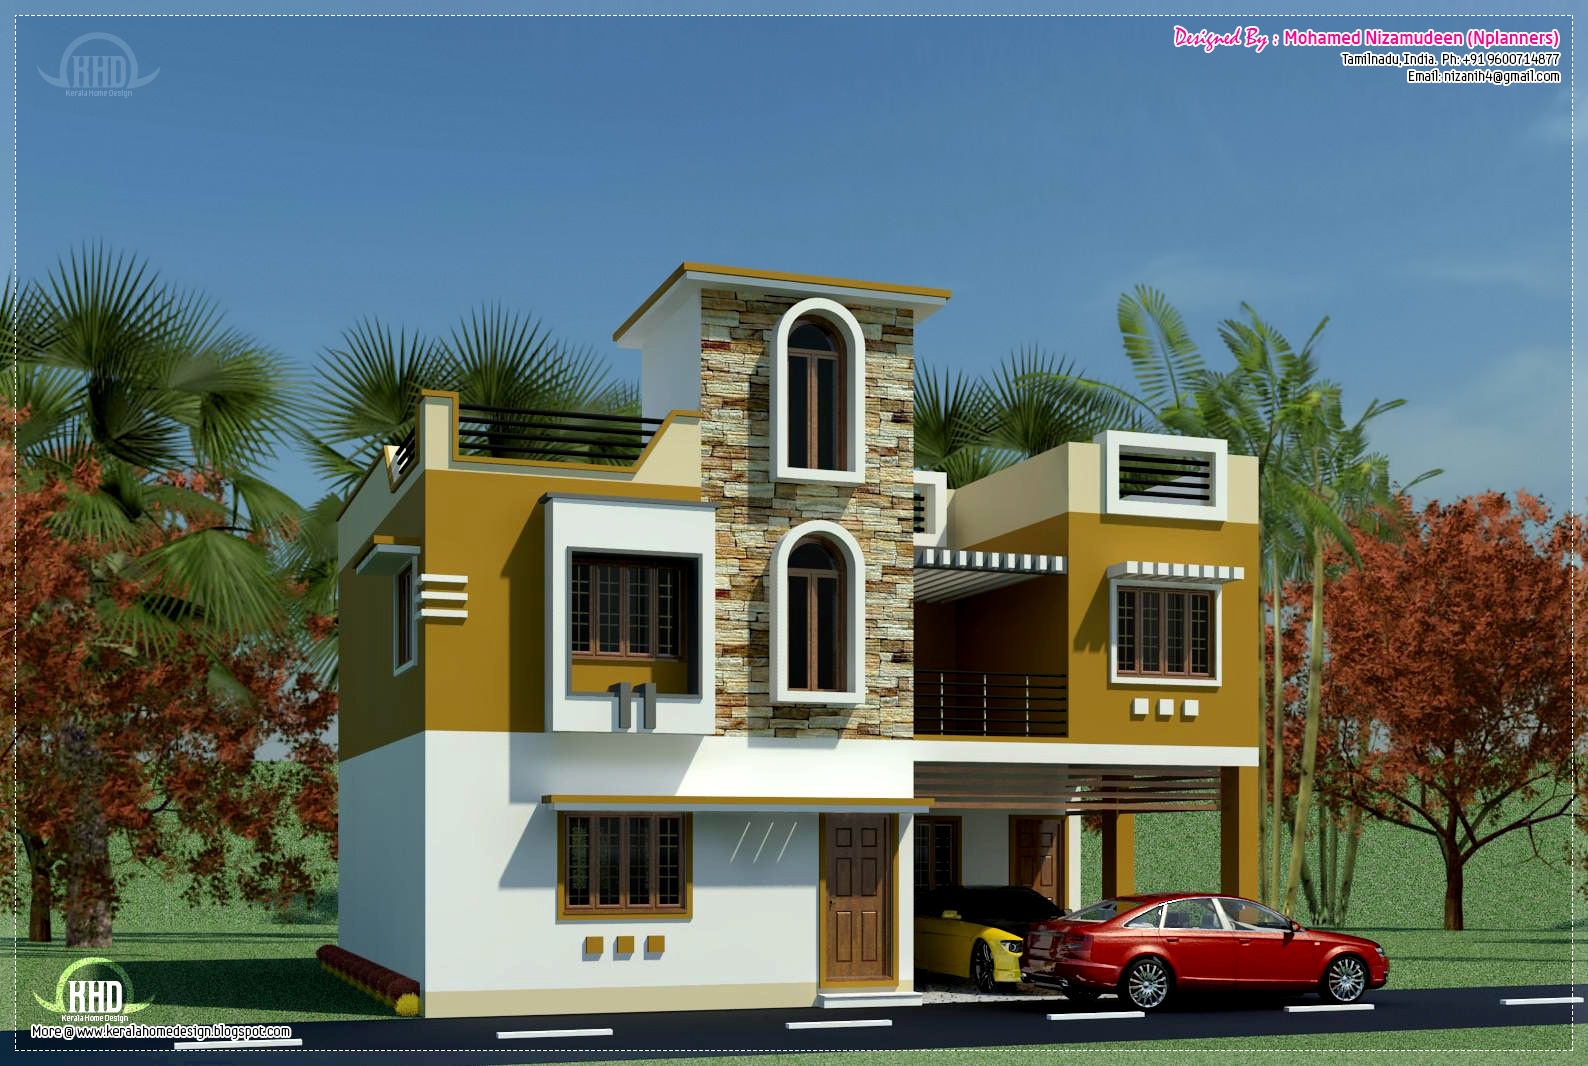 Beautiful Indian Home Design Photos Exterior Decor | Welcome To My Site with regard to Indian Home Exterior Design